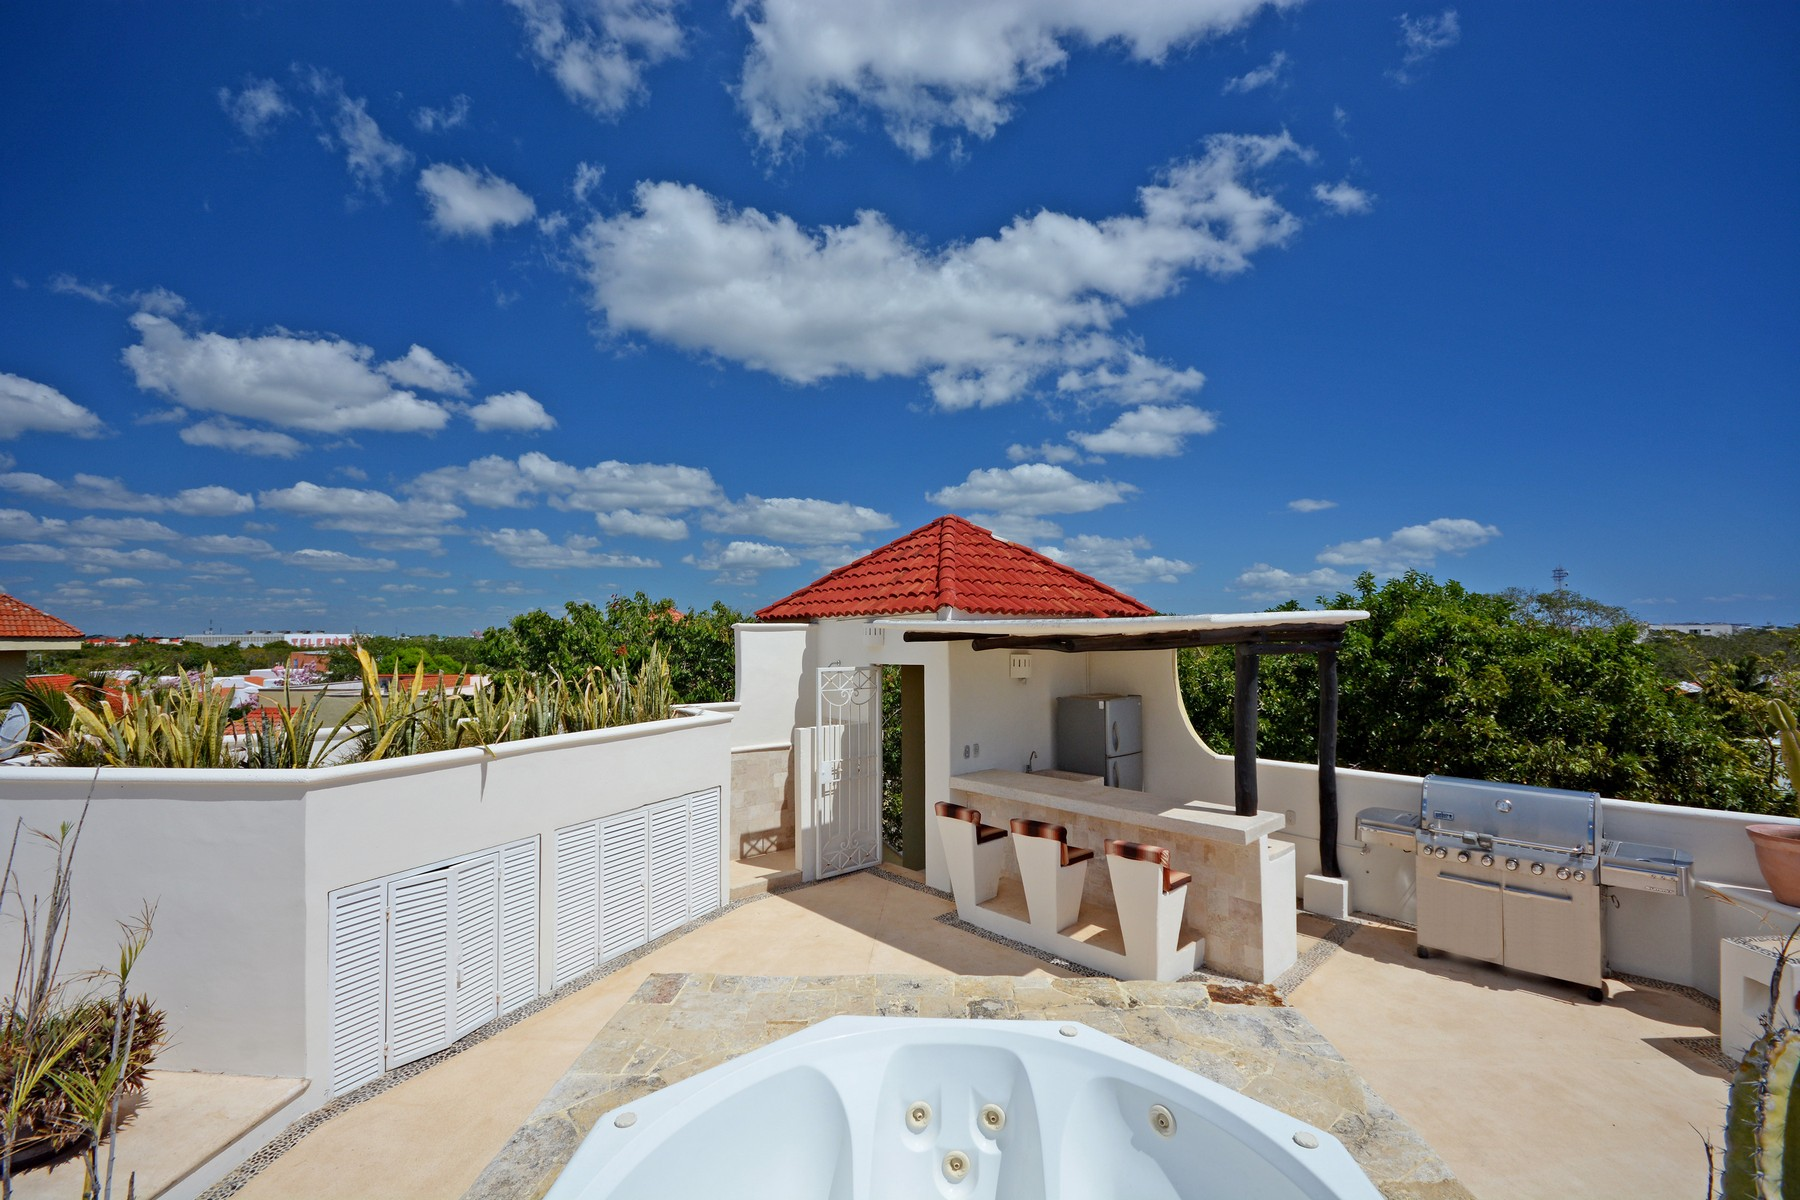 Additional photo for property listing at CASA AMIGOS Avenida Paseo Coba Playa Del Carmen, Quintana Roo 77710 México